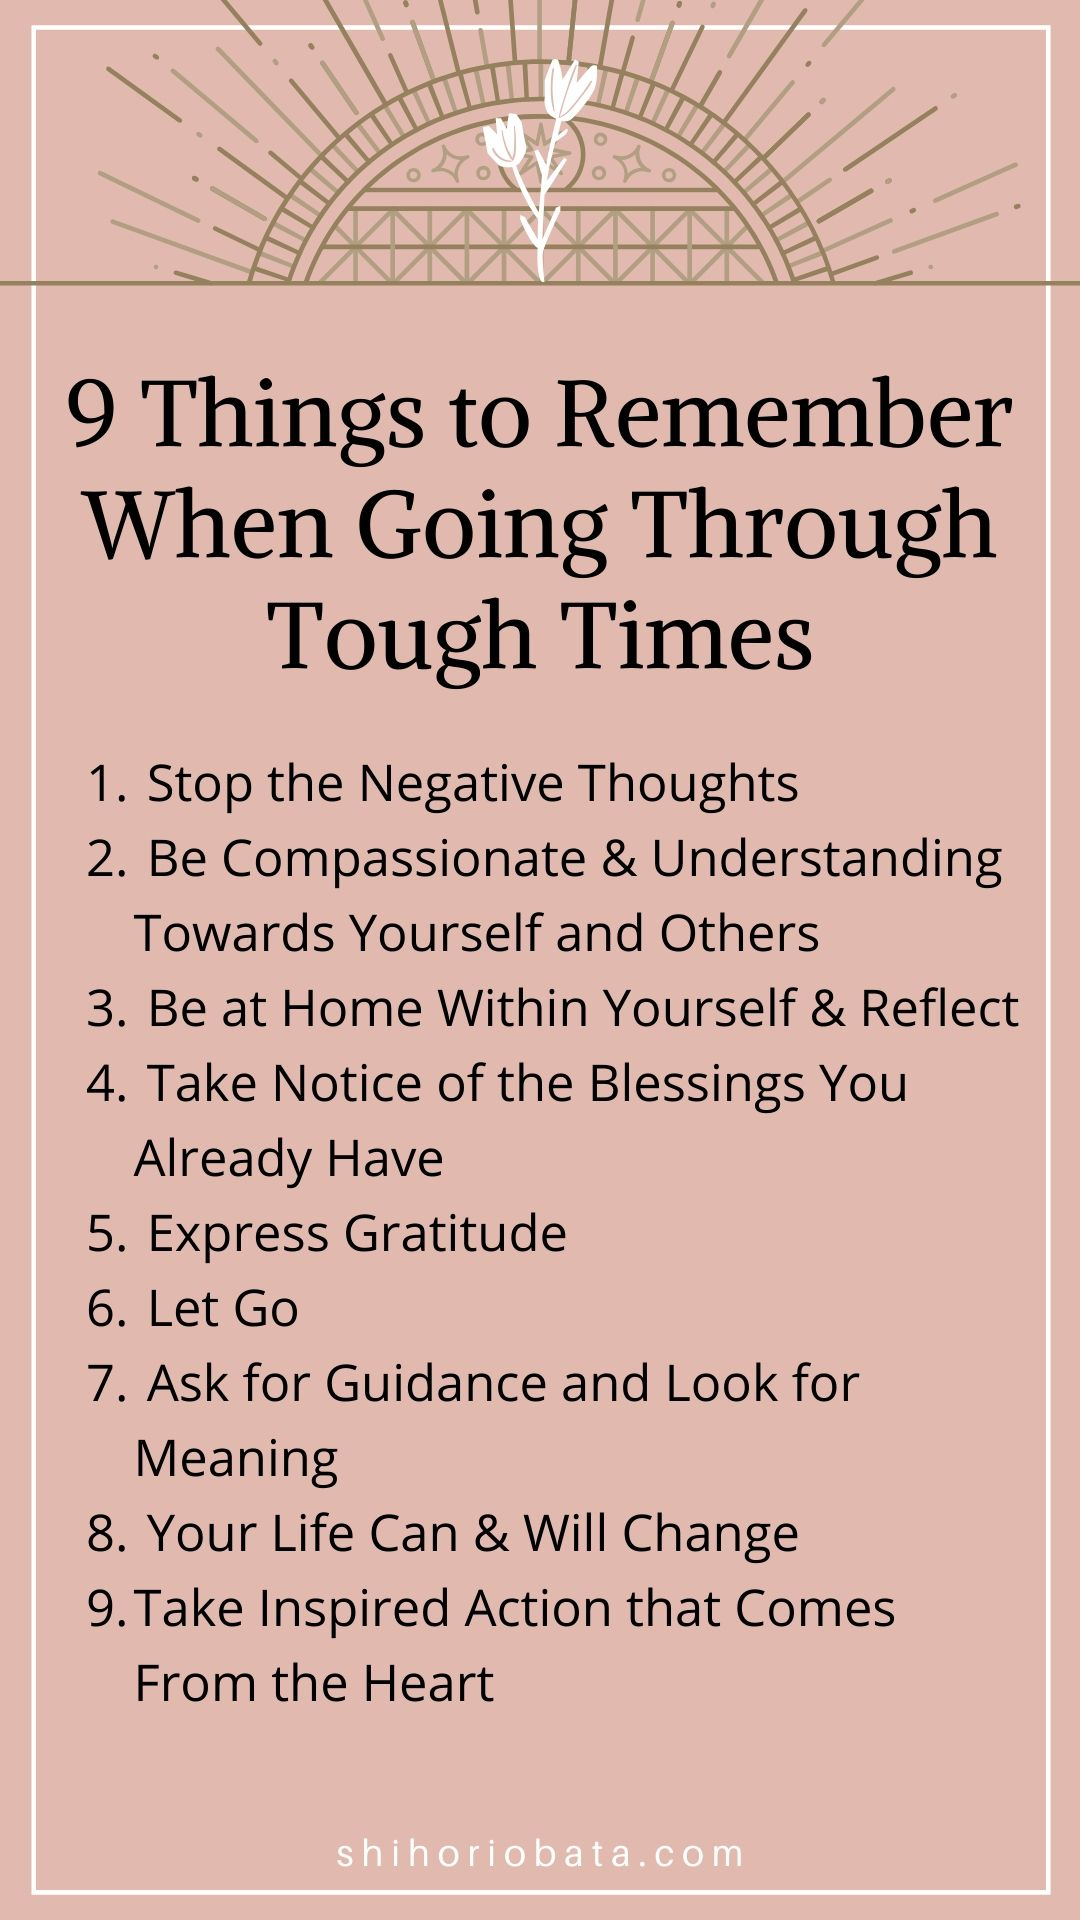 Things to Remember When Going through Tough Times List